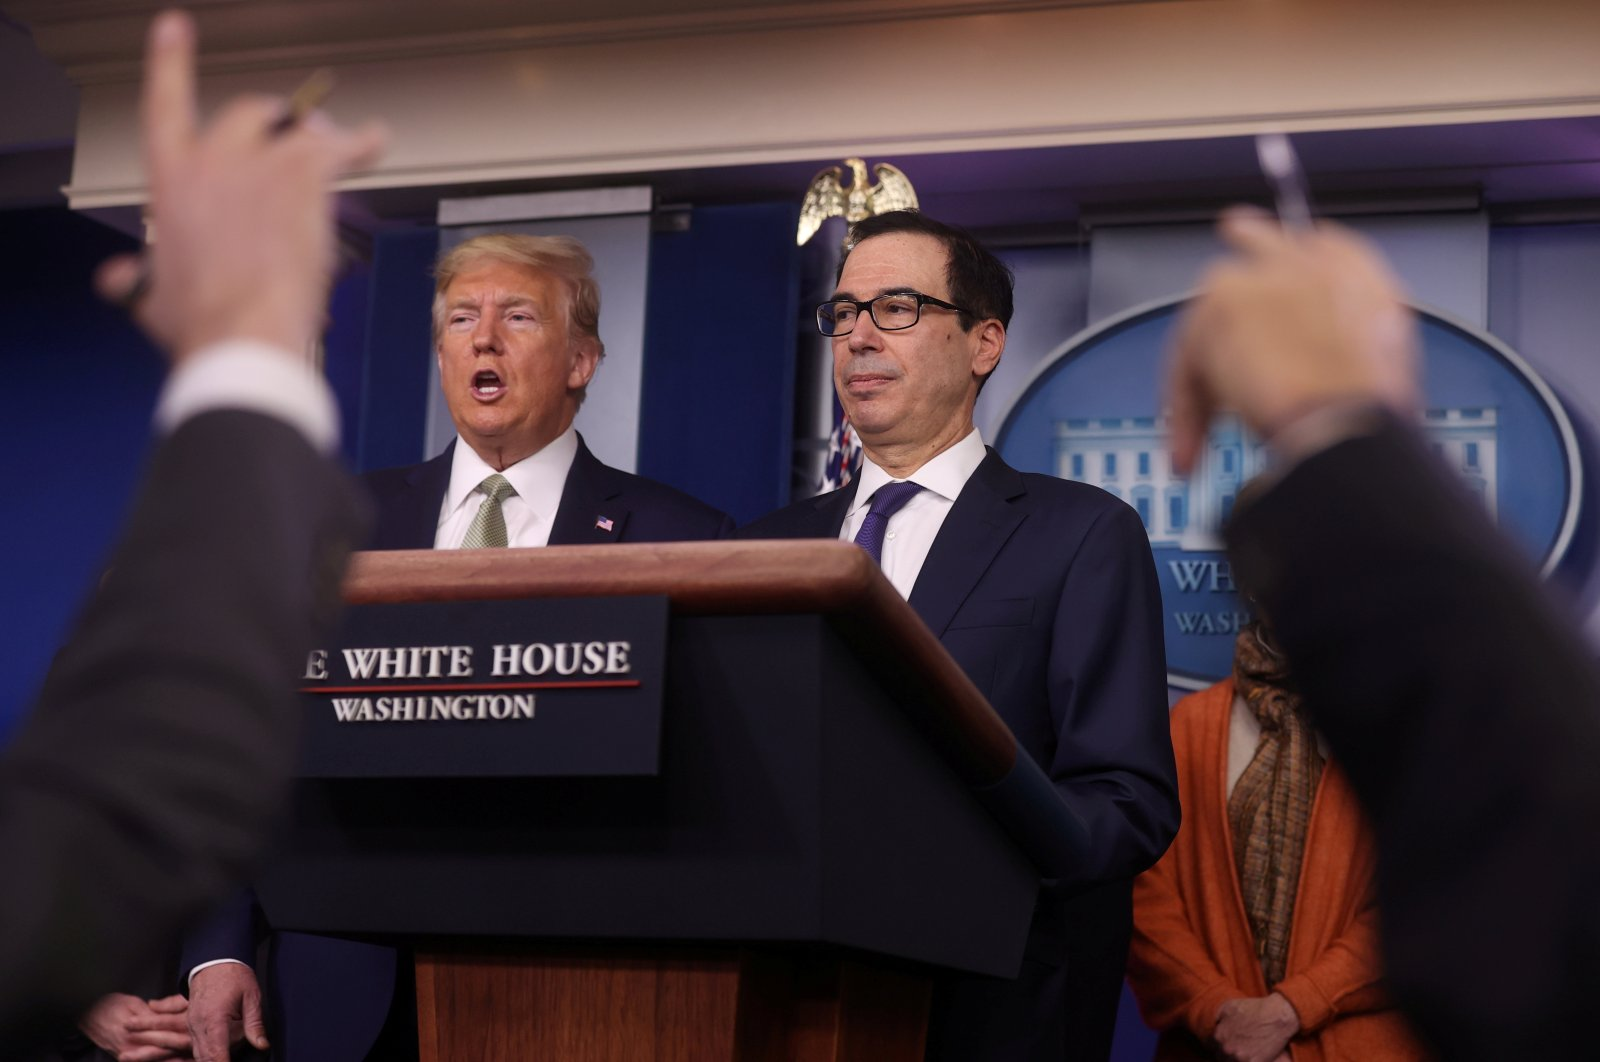 U.S. President Donald Trump and Treasury Secretary Steven Mnuchin answer questions during the Trump administration's daily coronavirus briefing at the White House in Washington, U.S., March 17, 2020. (REUTERS Photo)